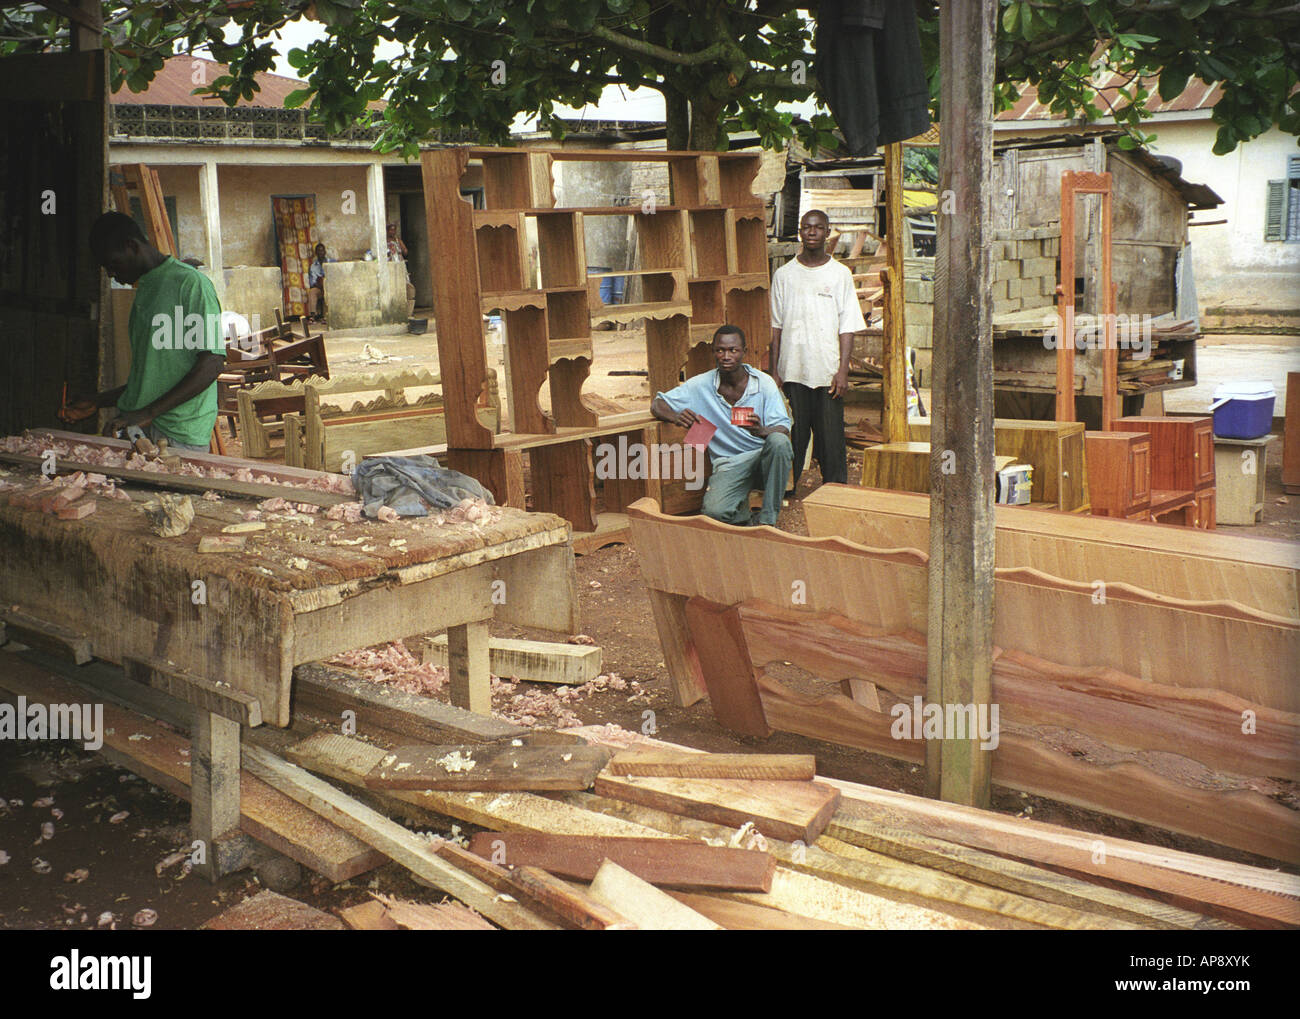 outdoor furniture factory and wood store with carpenters at work in rh alamy com outdoor furniture factory rutherford outdoor furniture factory direct